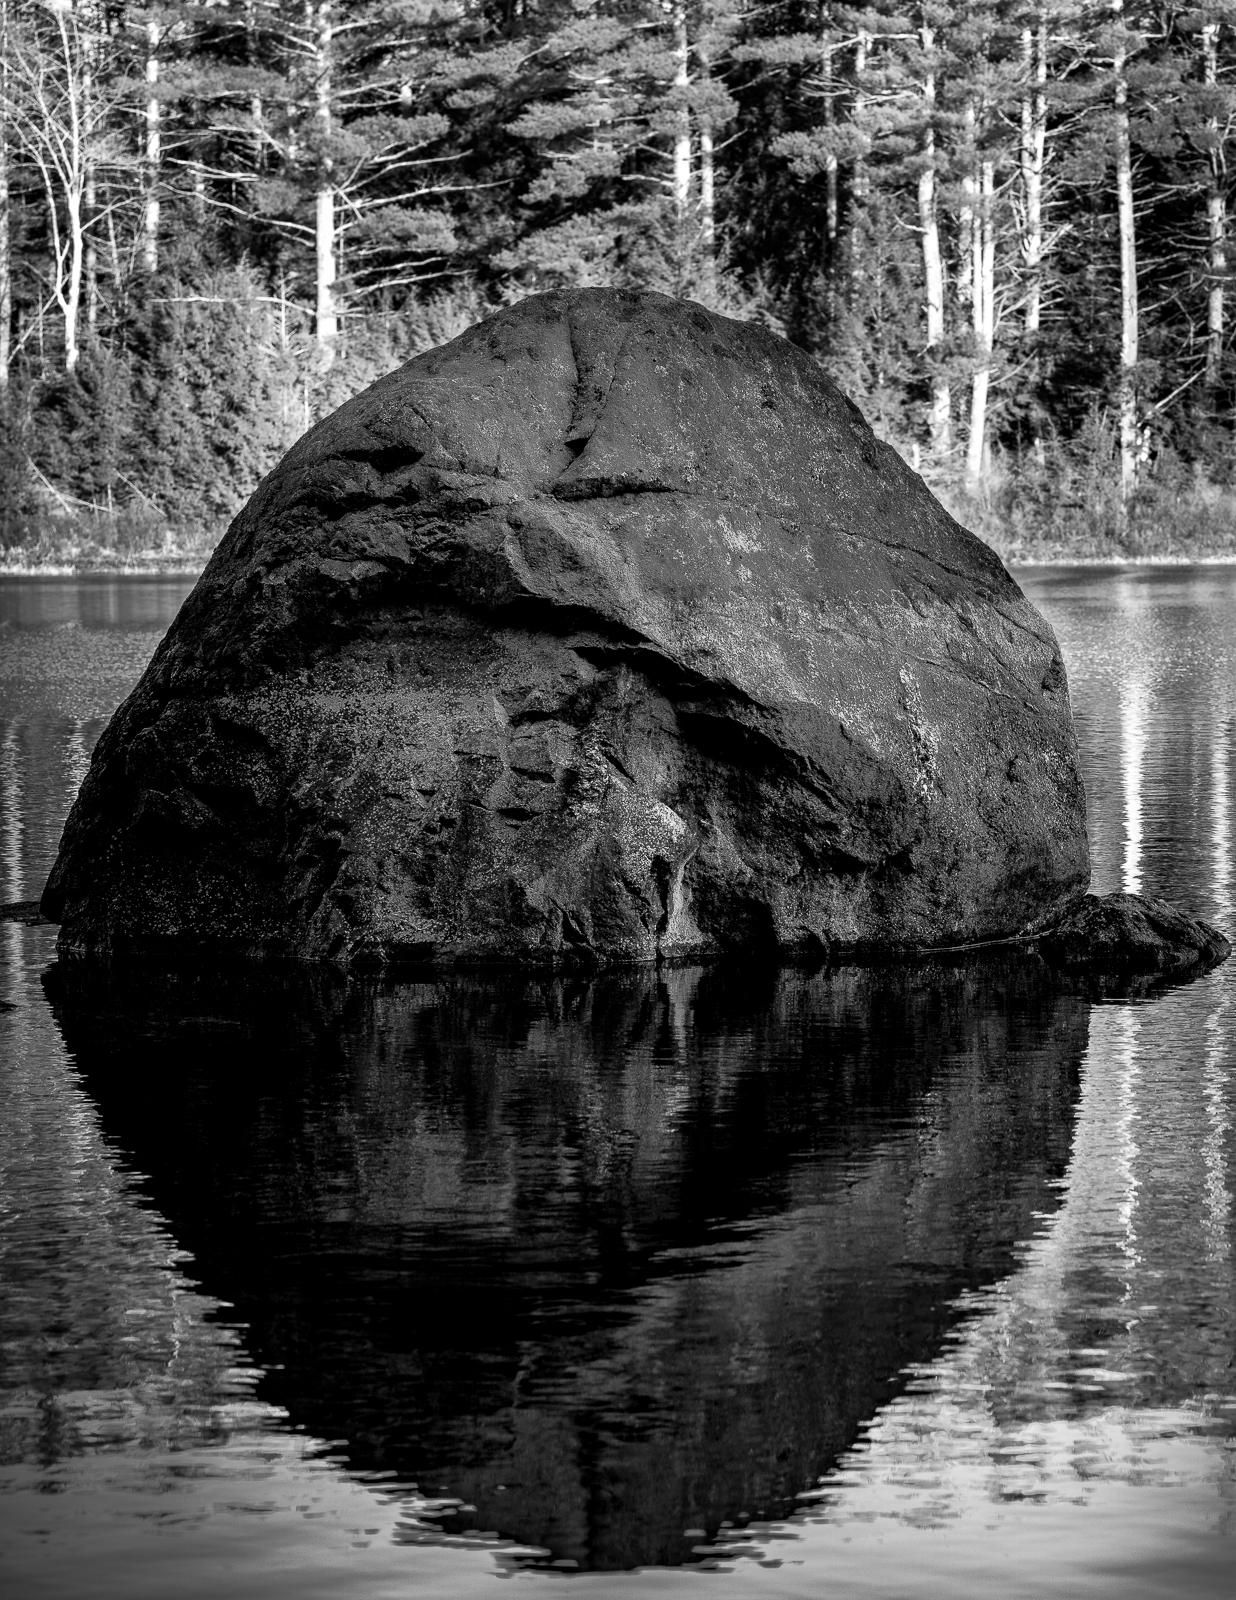 ITAP of a Rock That Looks Like Jabba the Hutt#PHOTO #CAPTURE #NATURE #INCREDIBLE